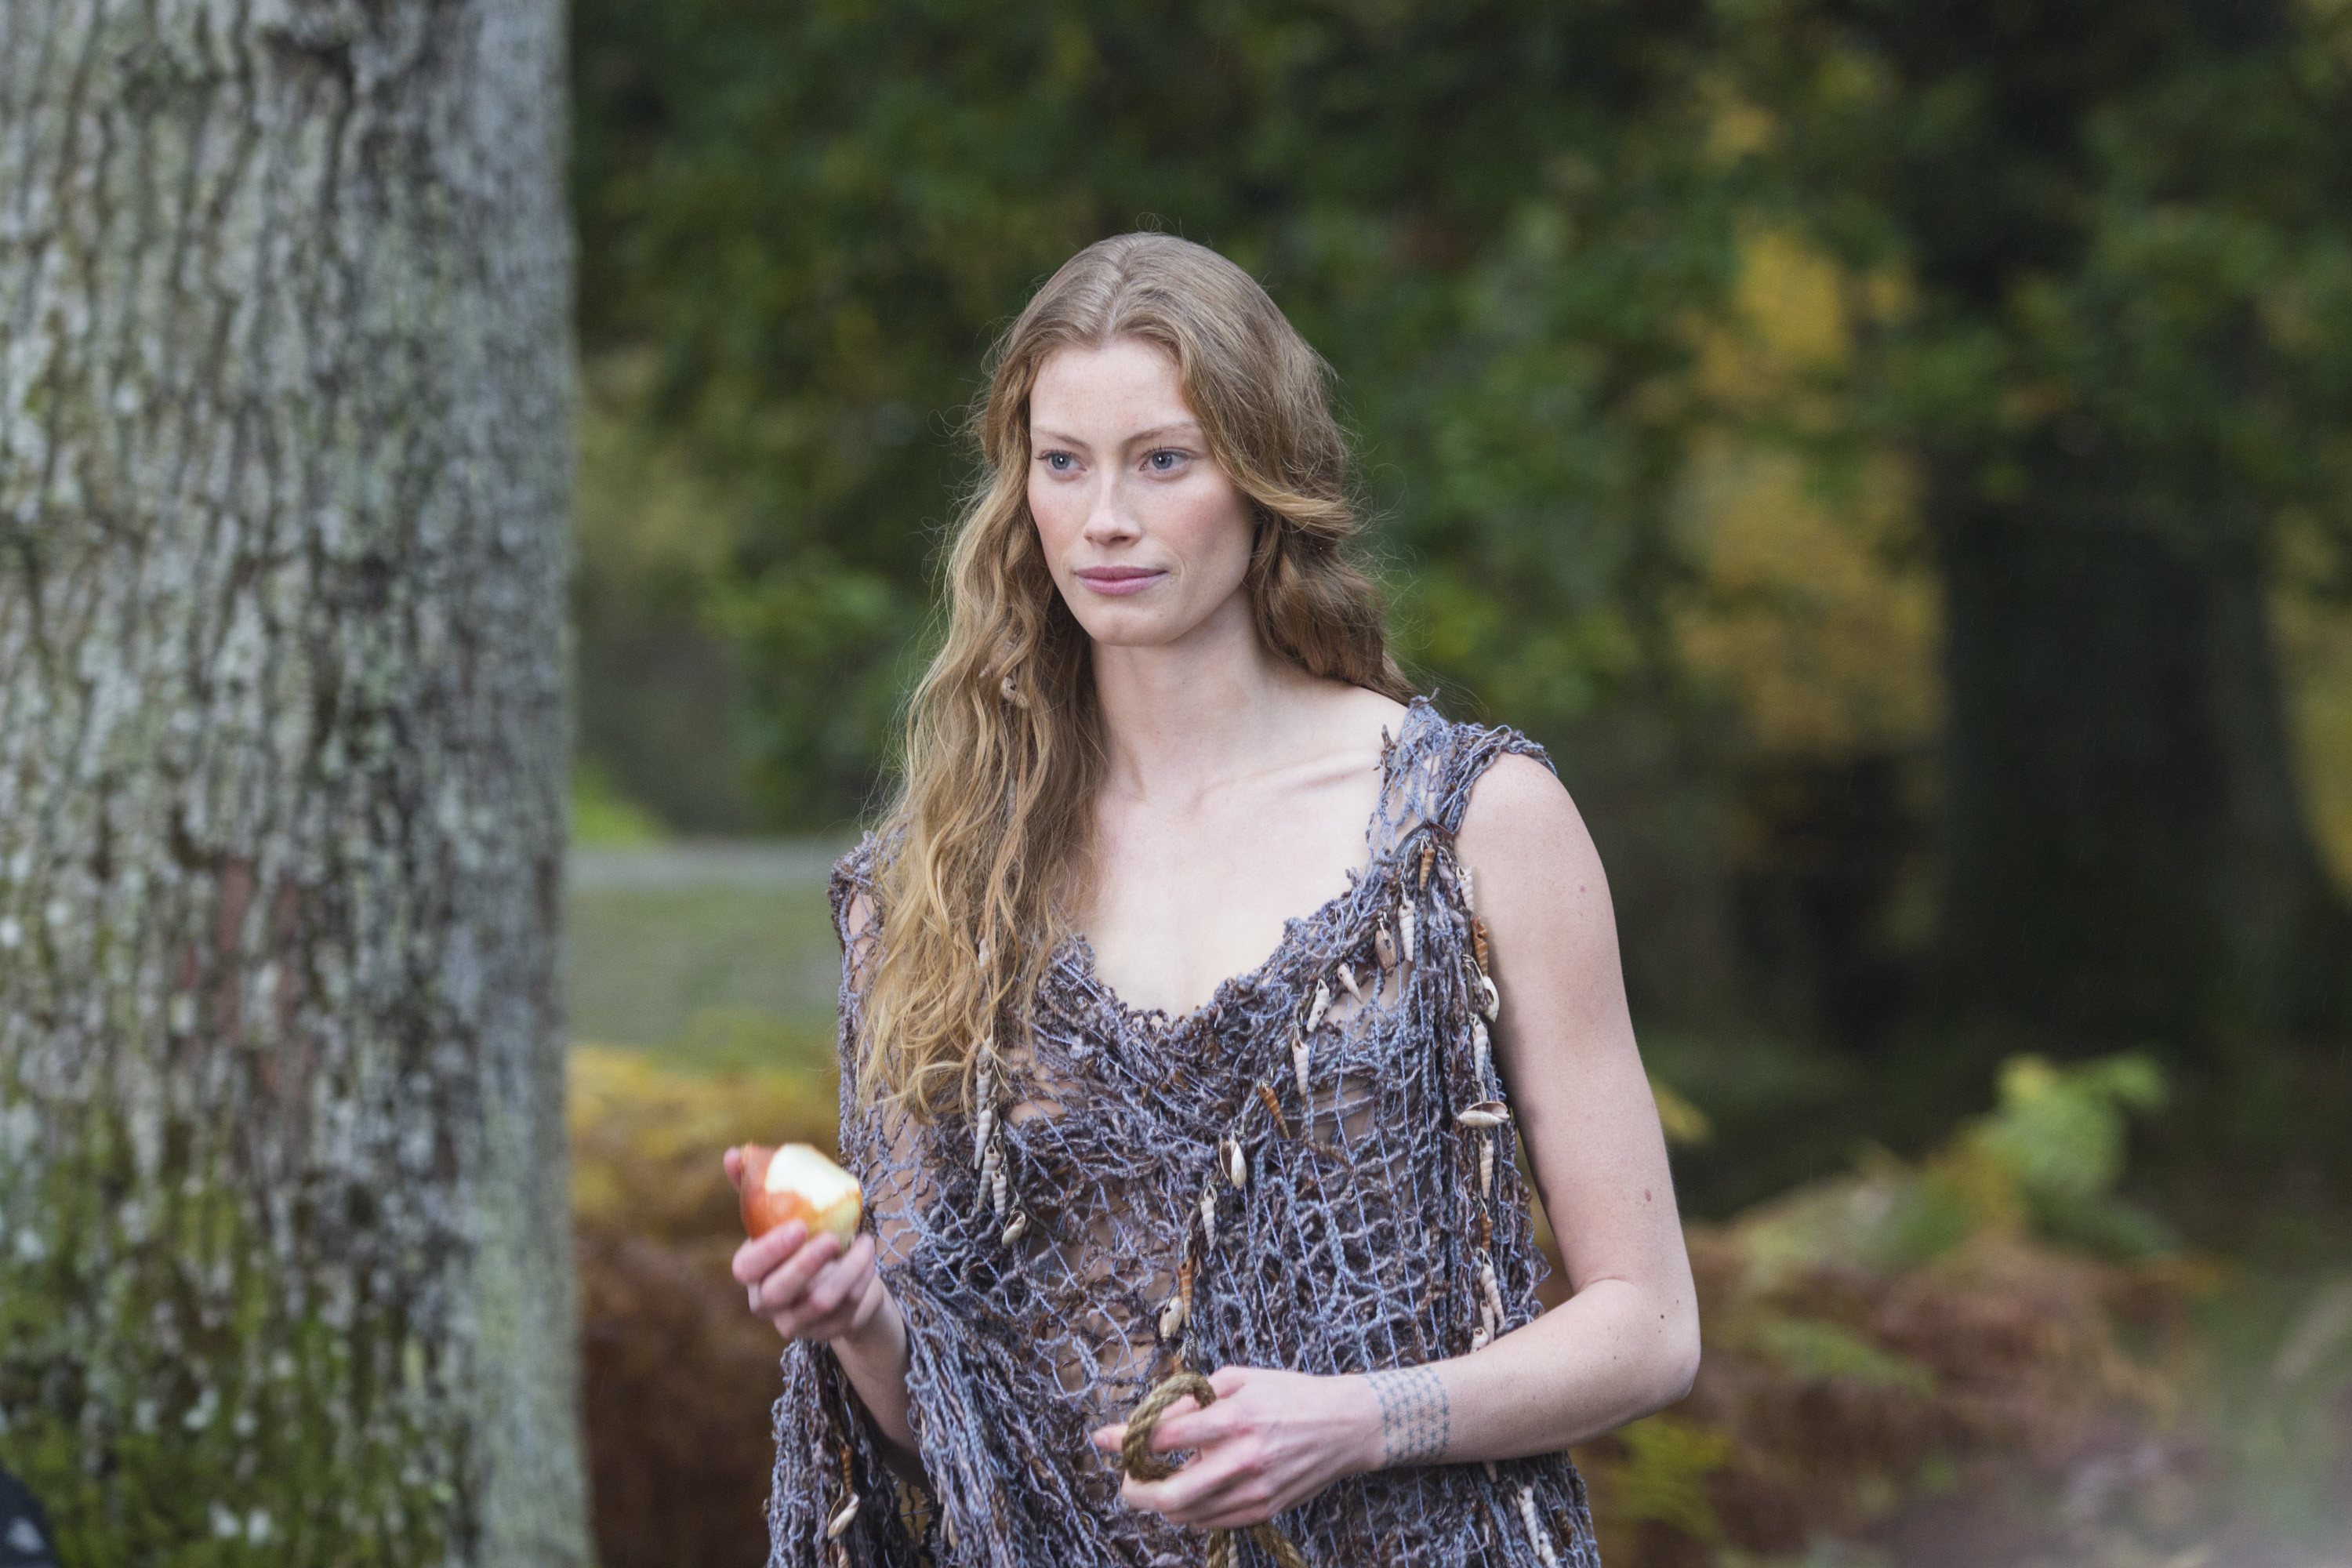 From the History channel tv series Vikings Princess Aslaug